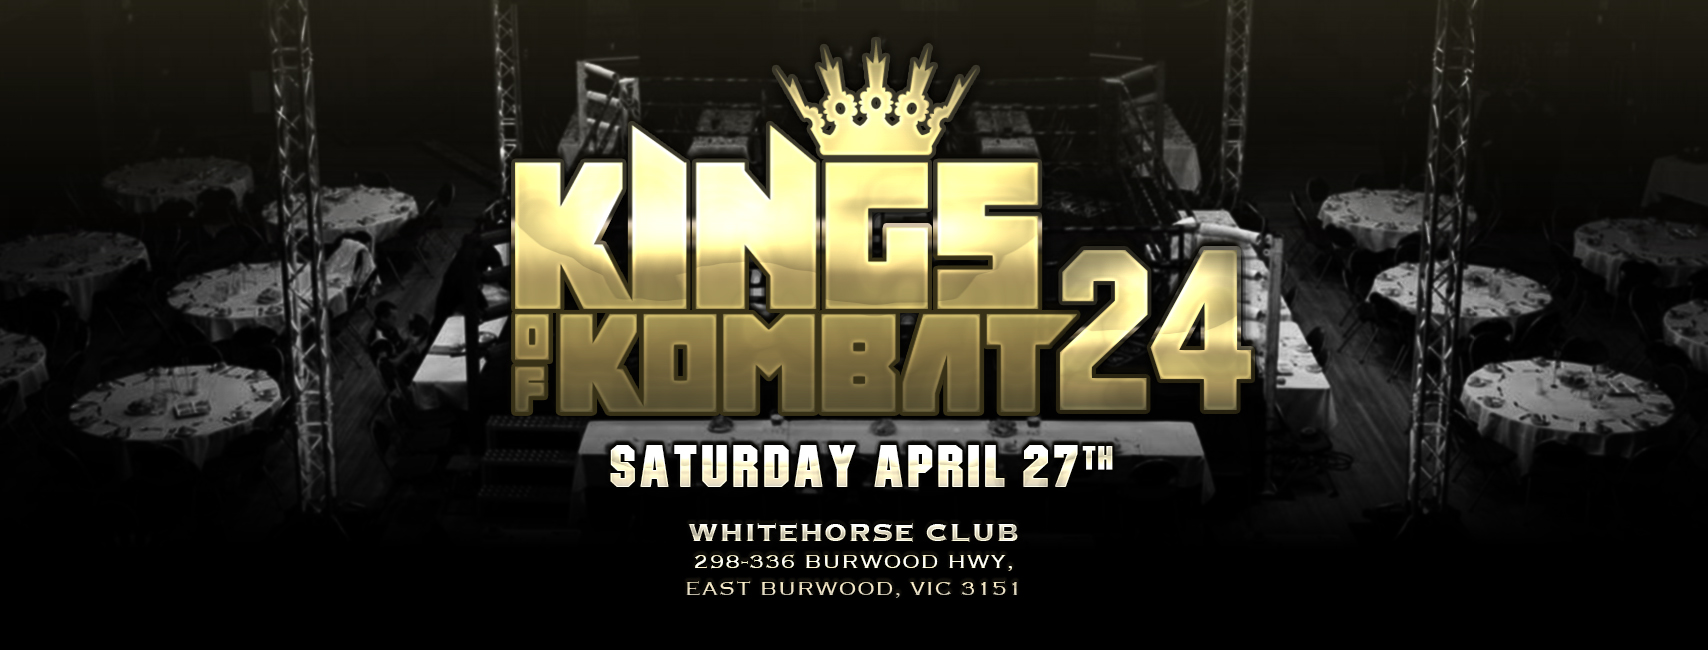 April 27th Whitehorse Club